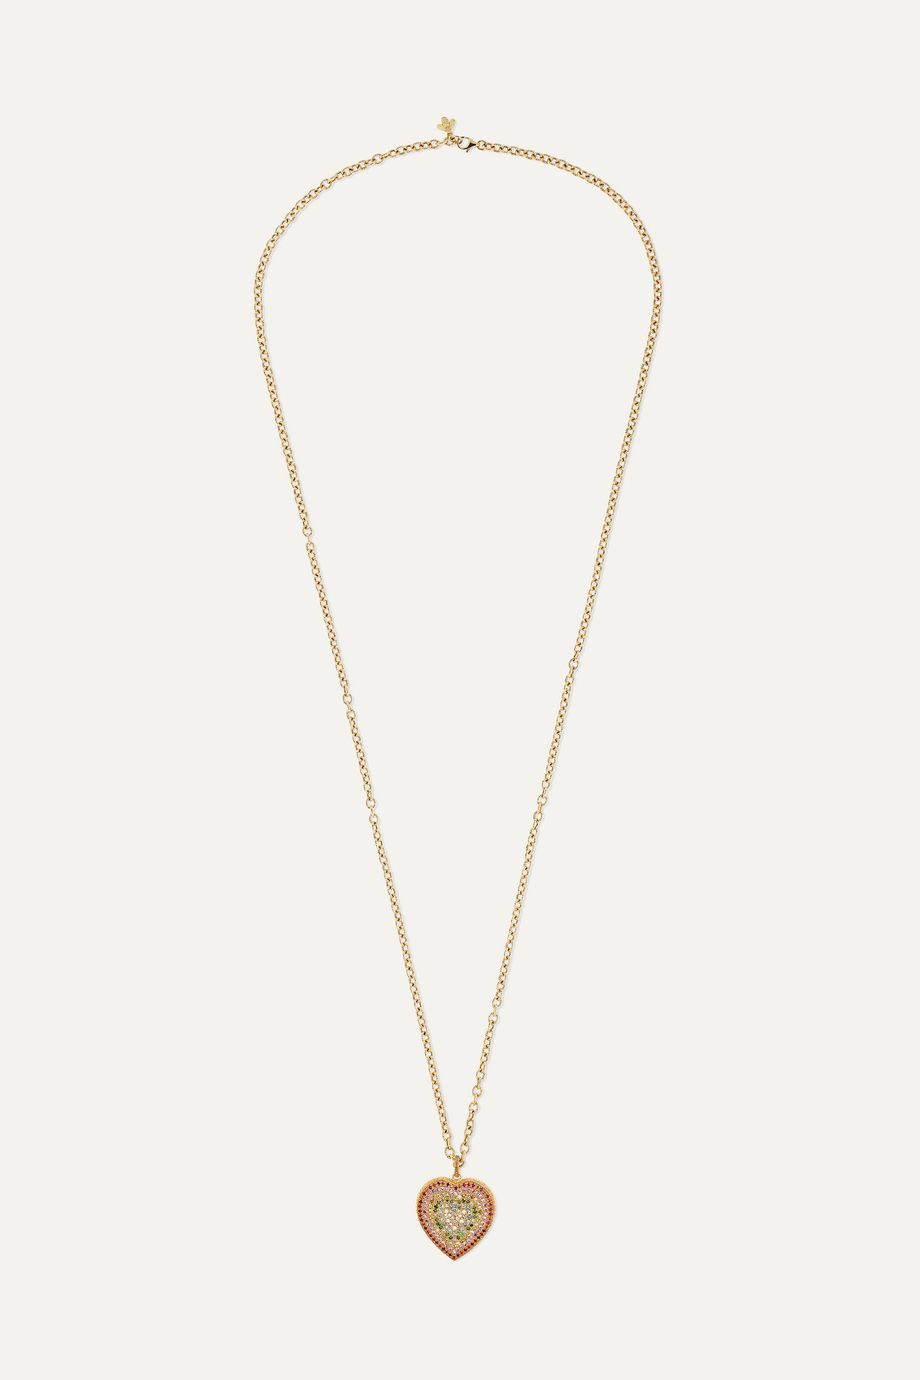 Carolina Bucci Collier en or 18 carats et pierres multiples